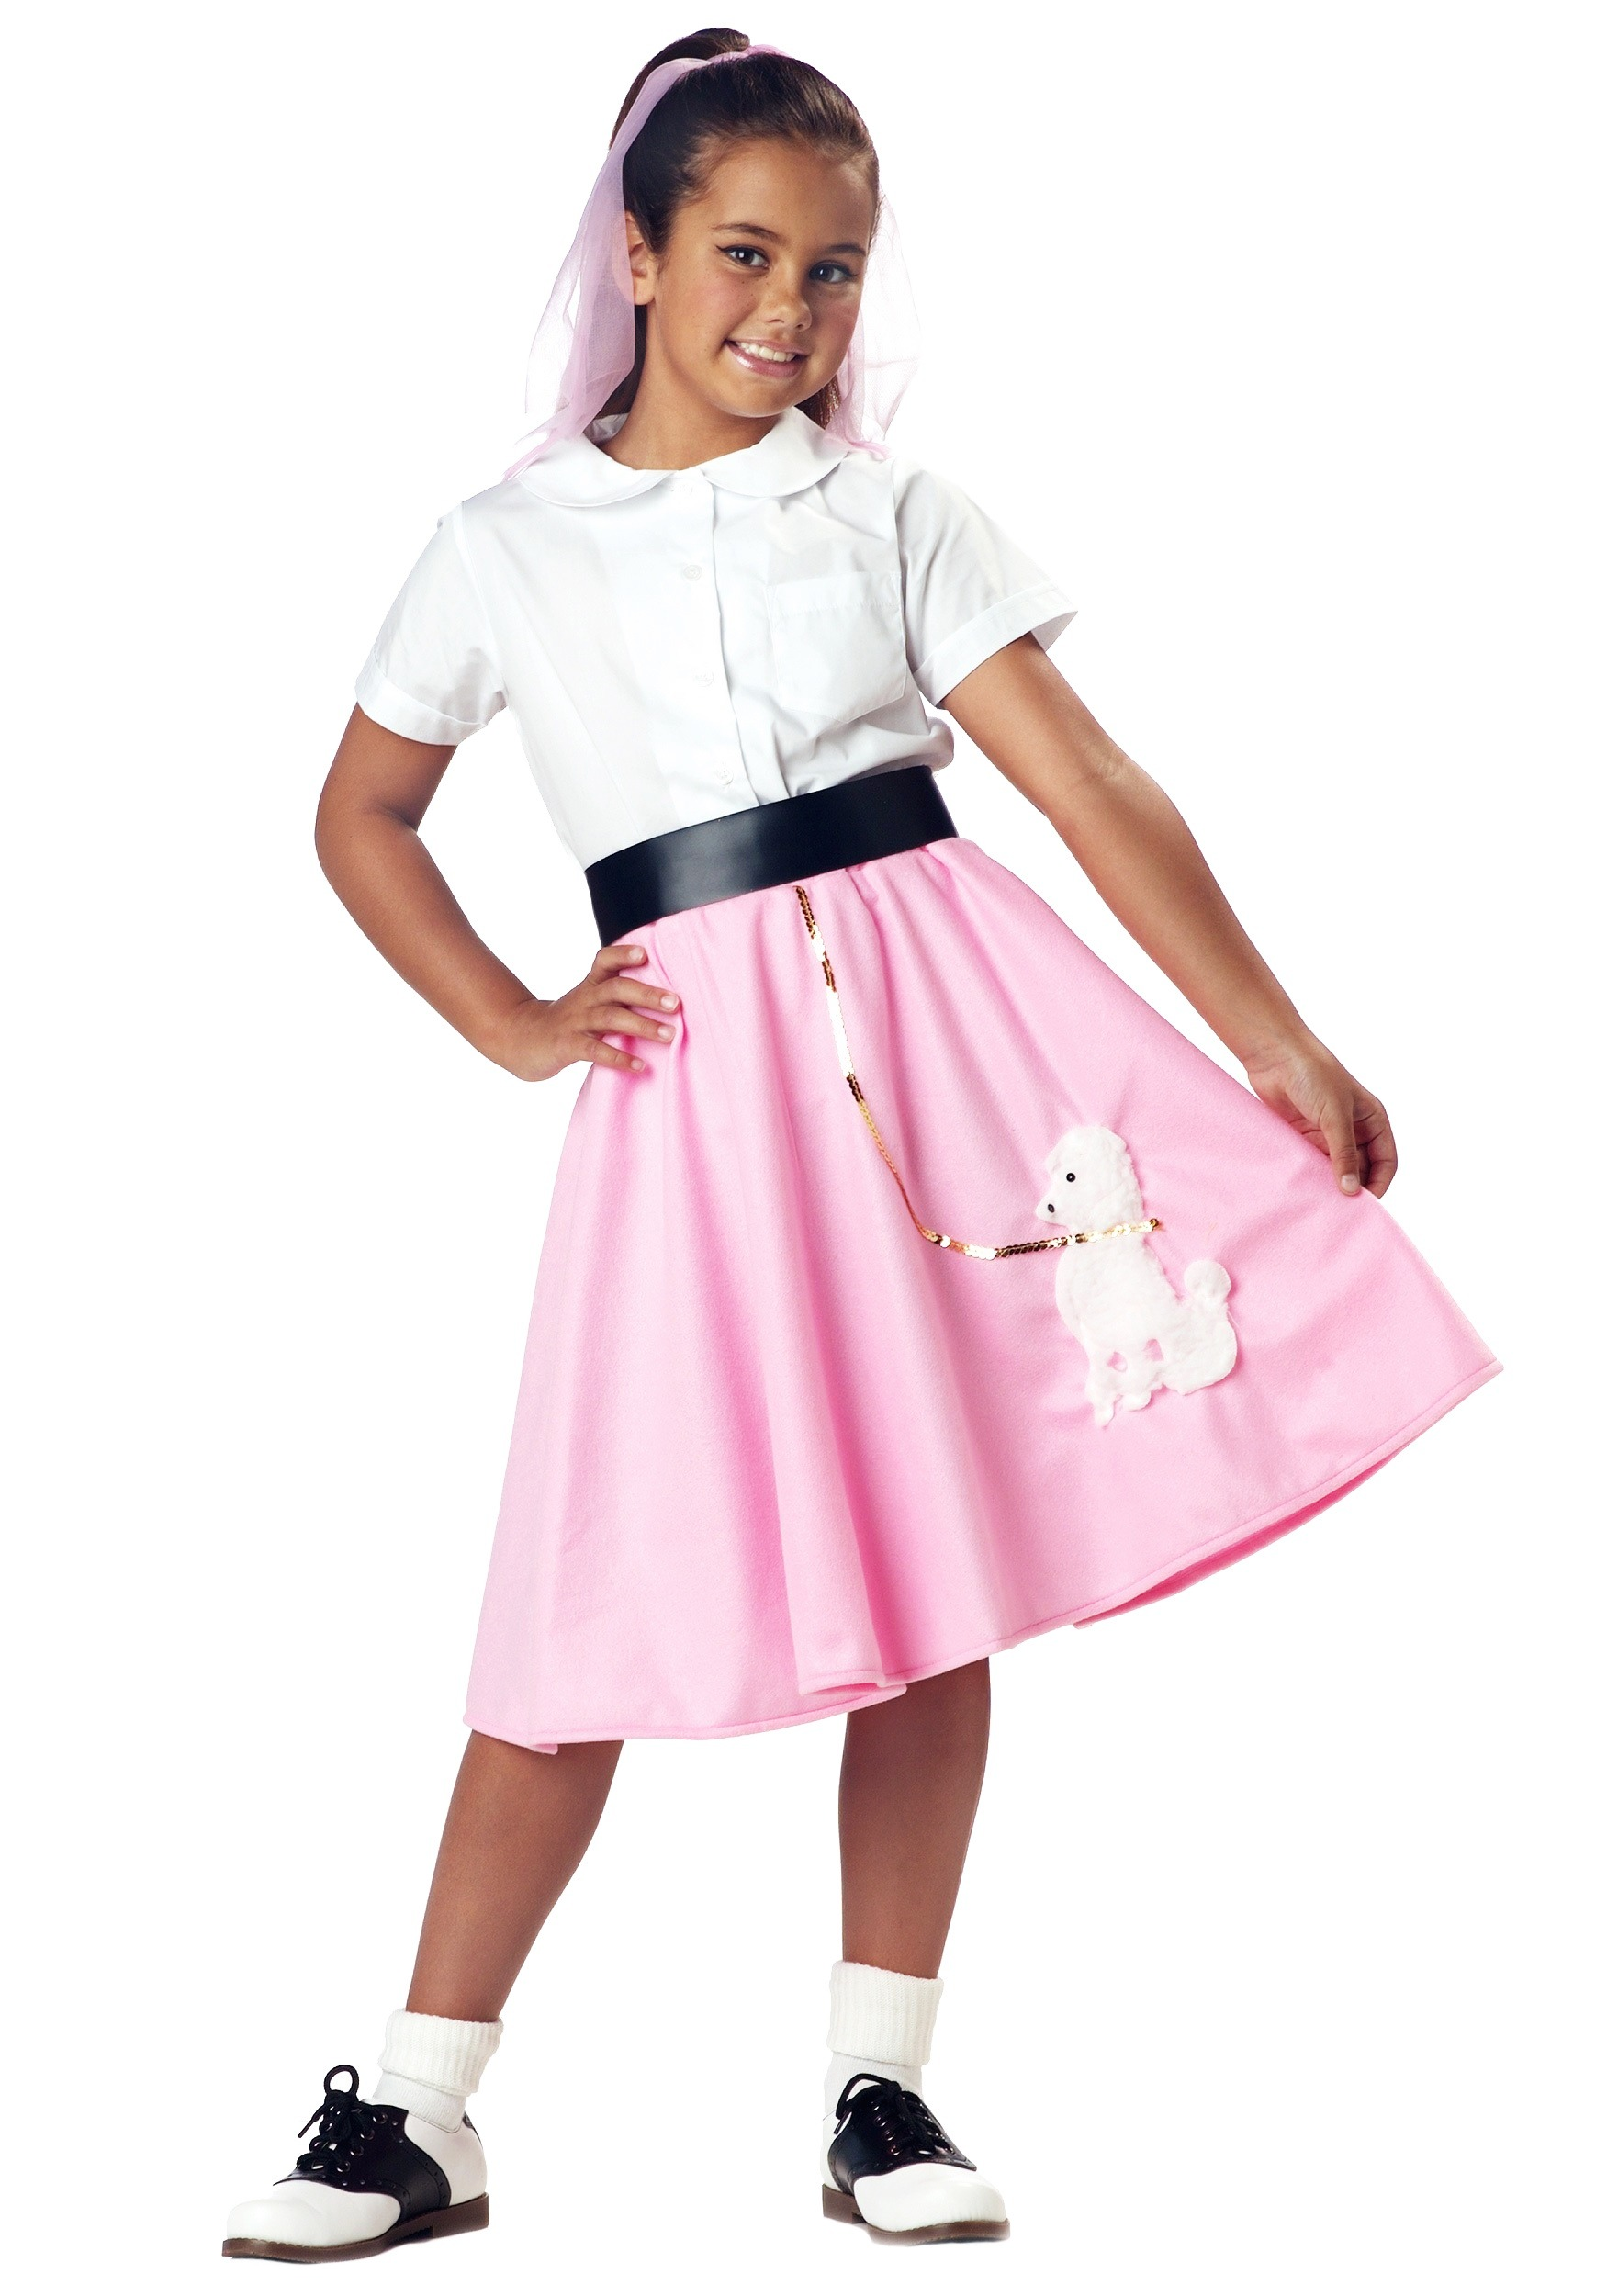 Kids Pink Poodle Skirt Costume